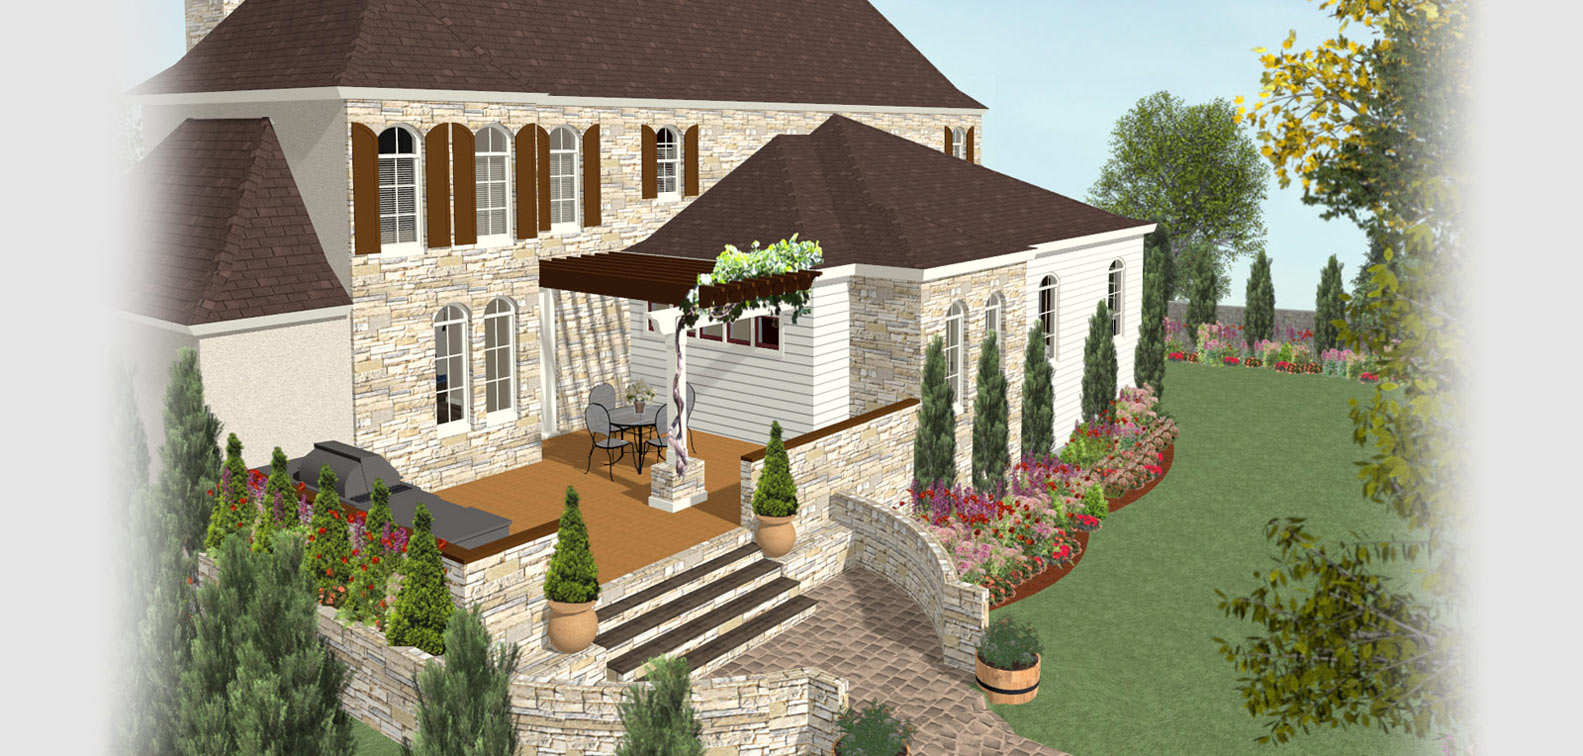 Home Garden Design Software Remodelling Interesting Home Designer Software For Deck And Landscape Software Projects Design Inspiration